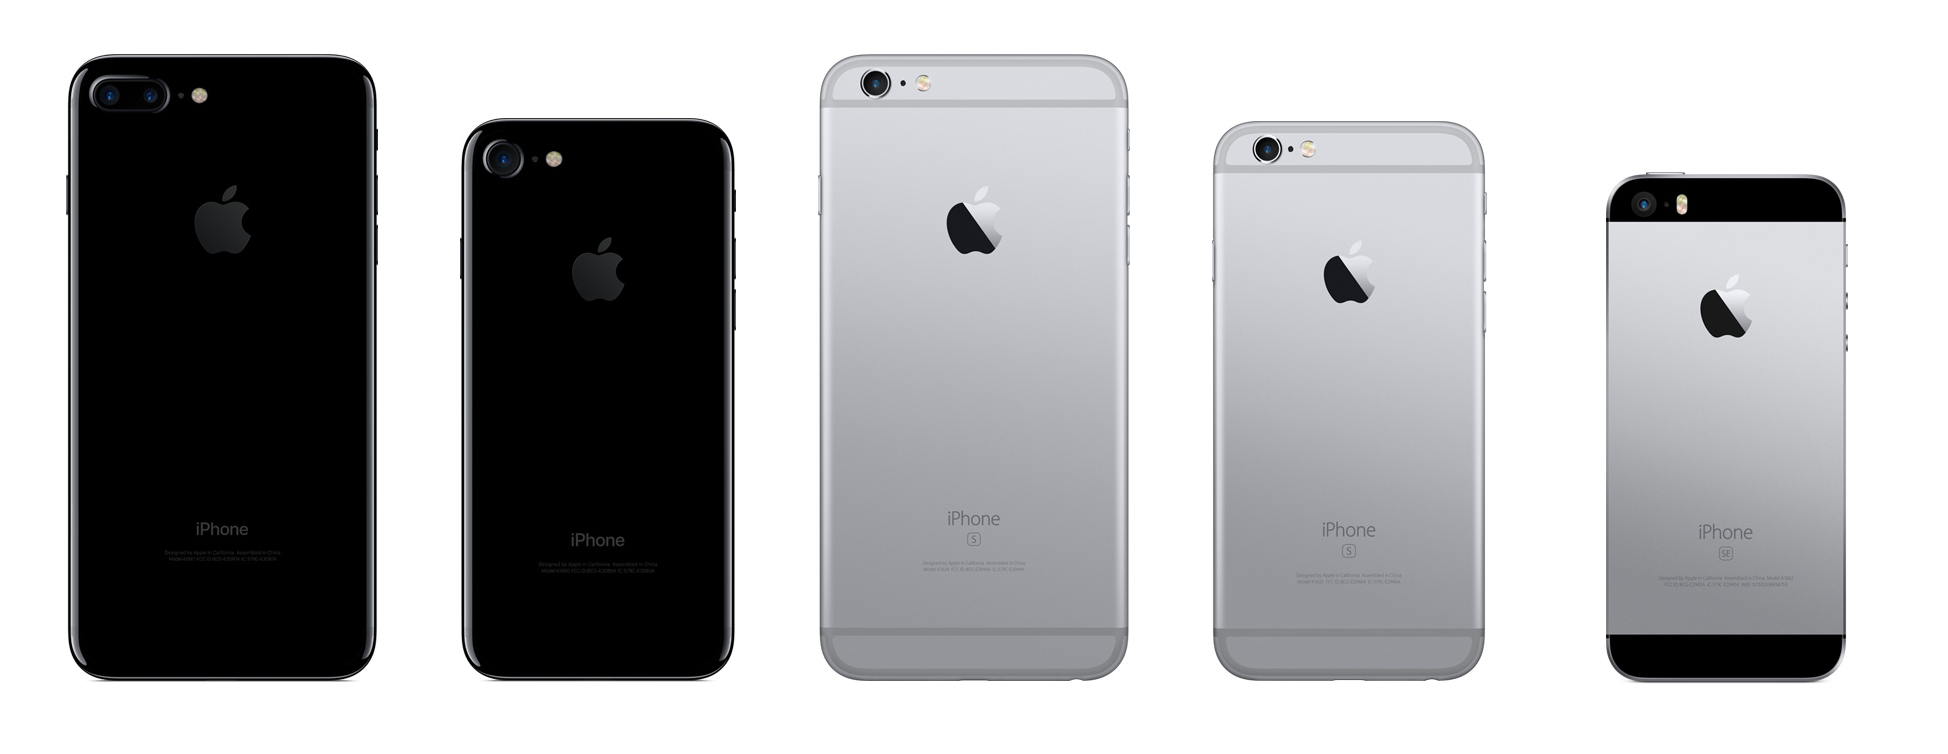 new product f646b 9f603 Weight, size, and battery life: iPhone 7 vs iPhone 6s